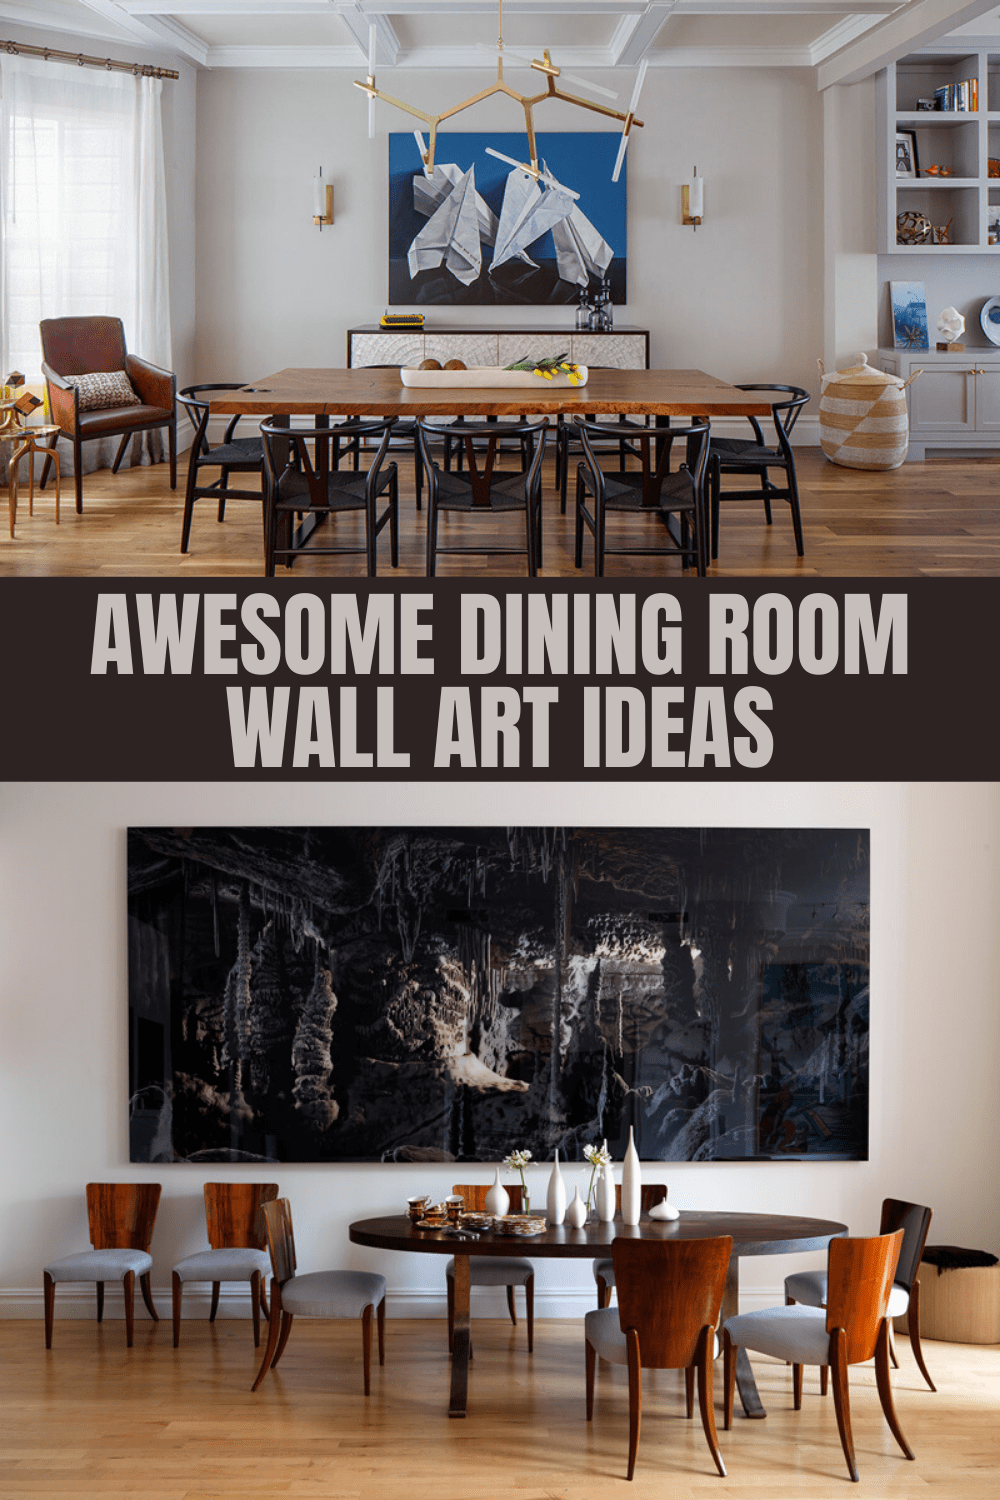 AWESOME DINING ROOM WALL ART IDEAS